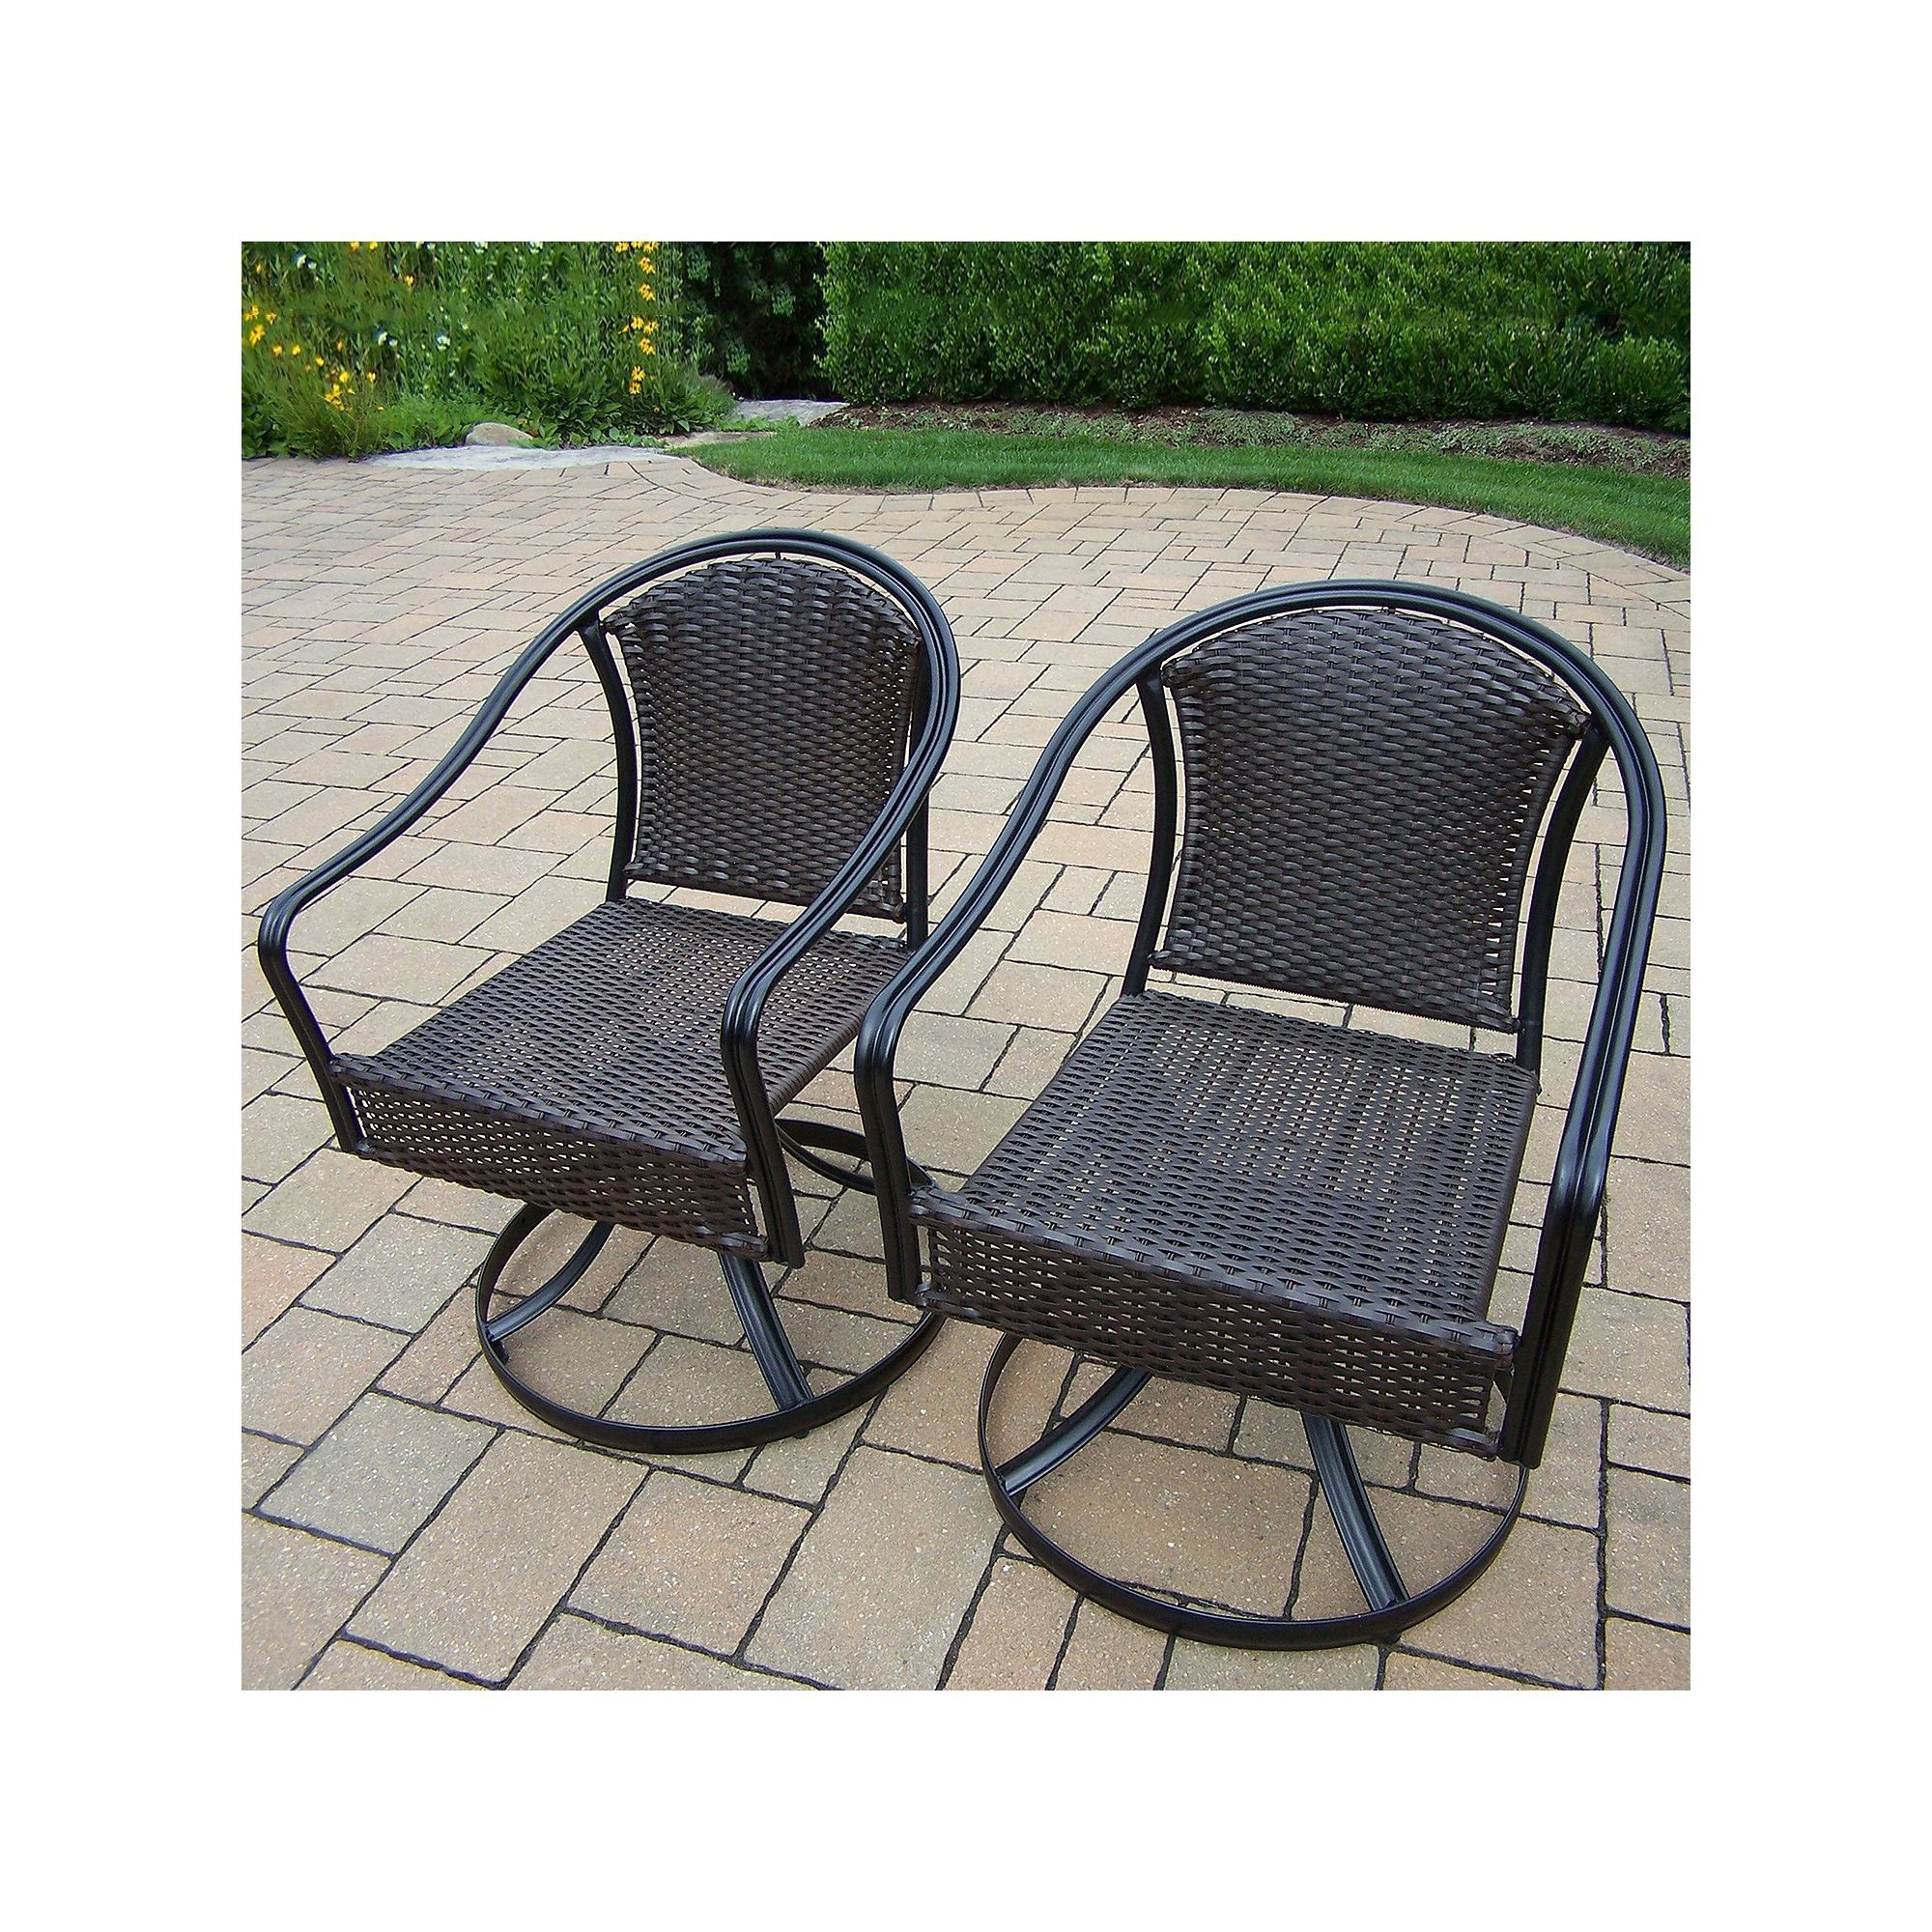 Outdoor Tuscany Swivel Wicker Patio Chair 2 piece Set Multicolor